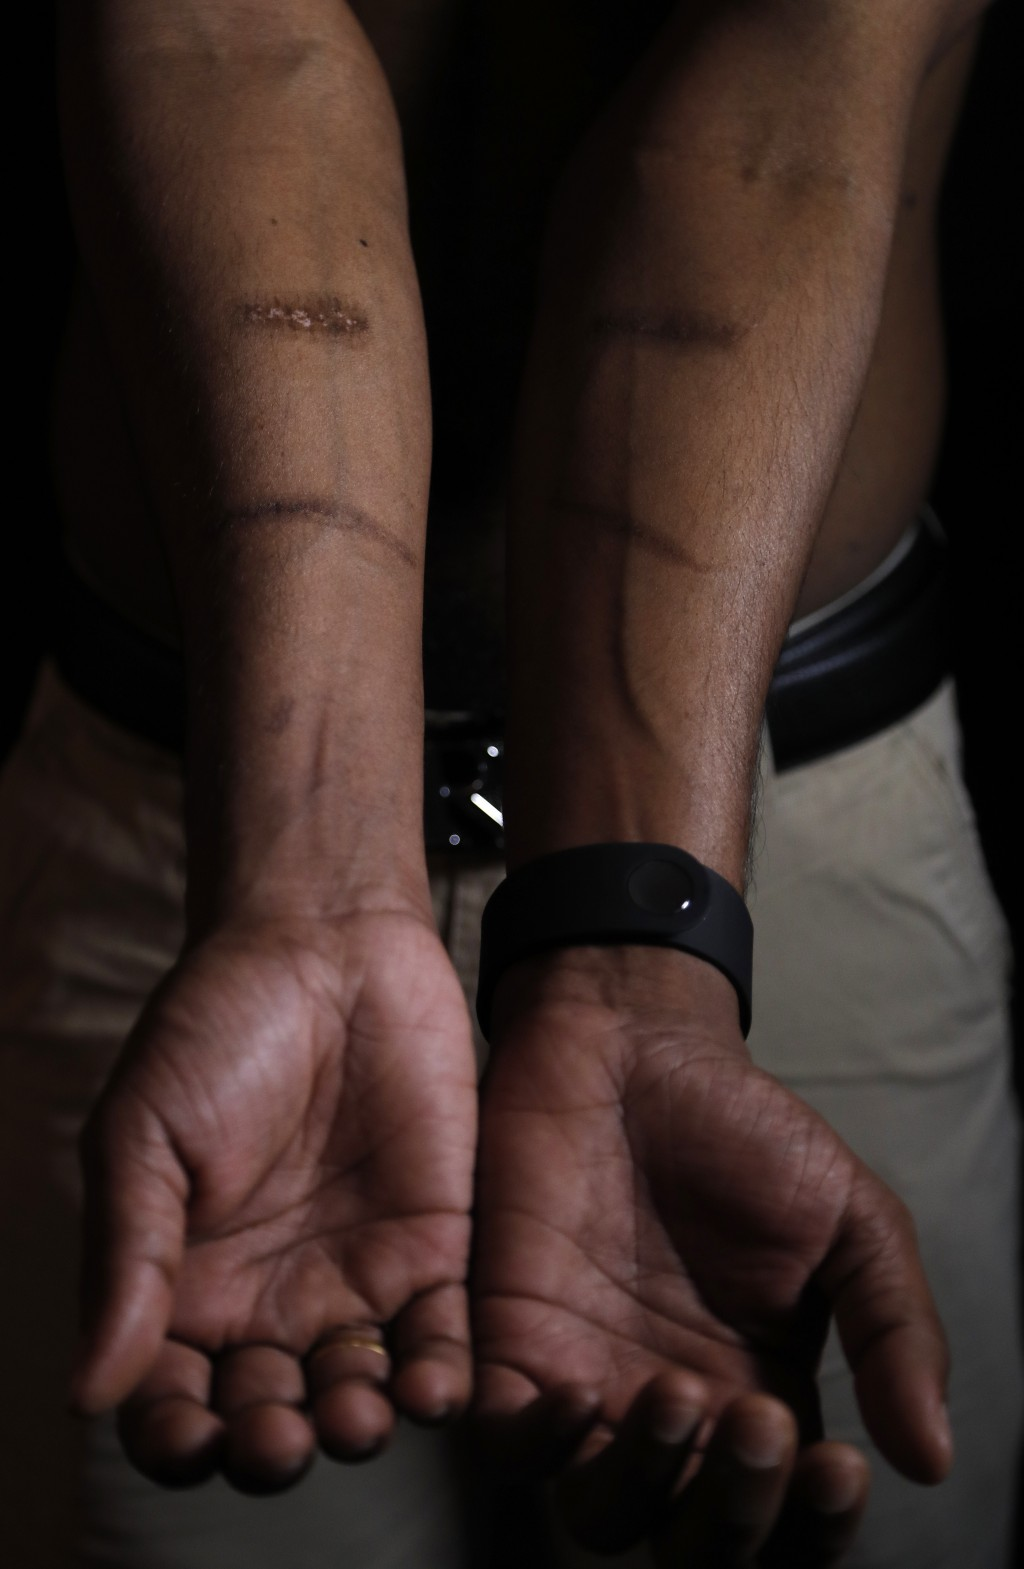 In this July 20, 2017, photo, a Sri Lankan man known as Witness #205 shows scars on his arms during an interview in London. The 22-year old, like the ...